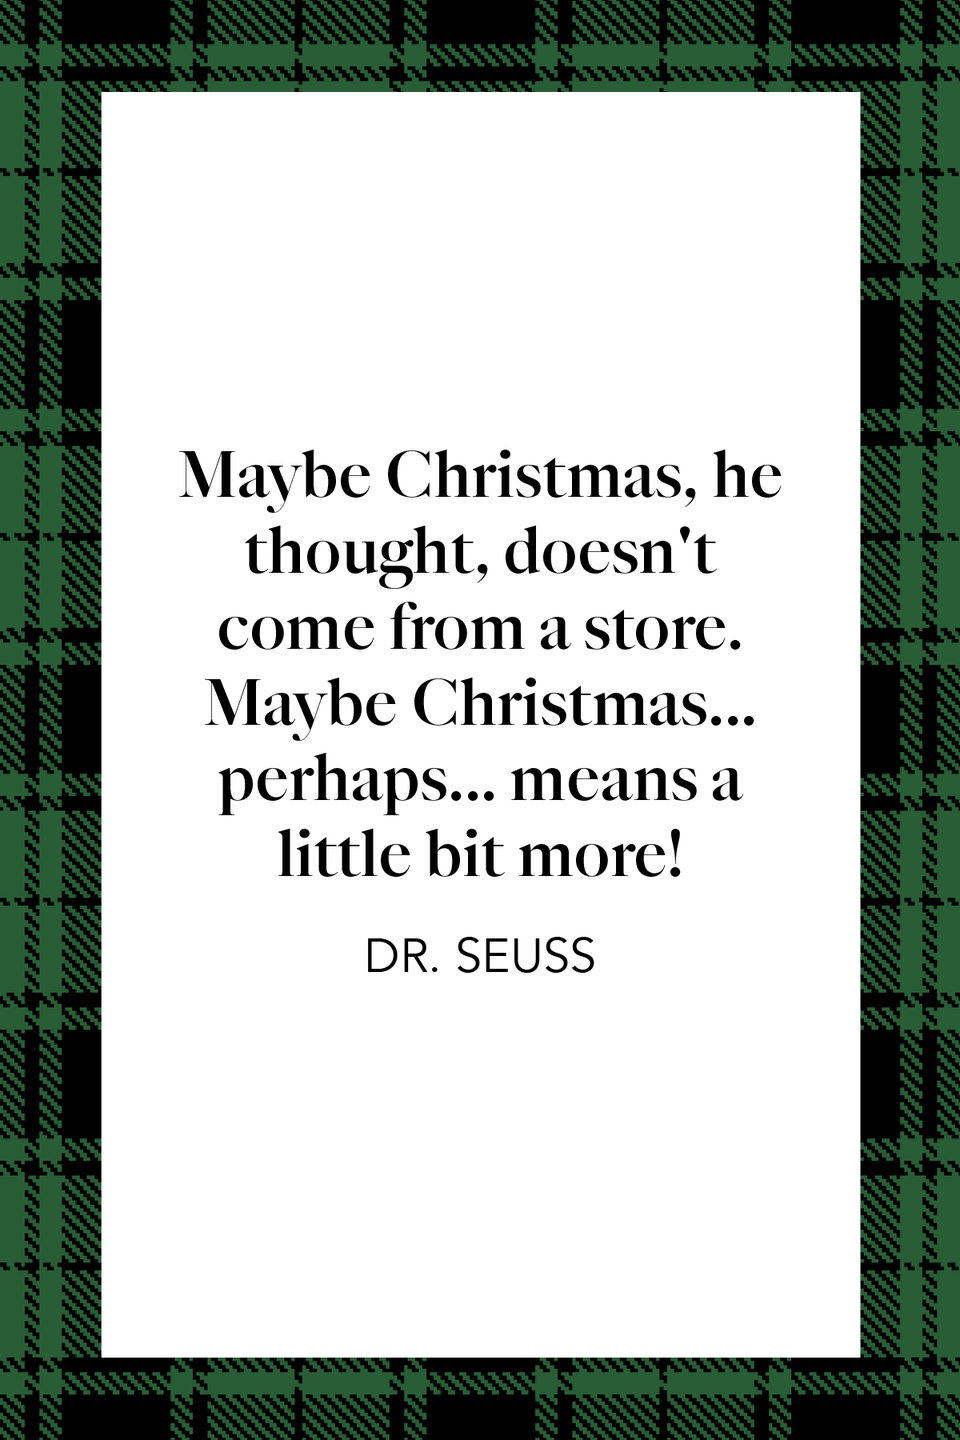 "<p>Children's author Theodor Geisel, better known as Dr. Seuss, wrote in <em><a href=""https://www.amazon.com/Grinch-Stole-Christmas-Classic-Seuss/dp/0394800796?tag=syn-yahoo-20&ascsubtag=%5Bartid%7C10072.g.34536312%5Bsrc%7Cyahoo-us"" rel=""nofollow noopener"" target=""_blank"" data-ylk=""slk:How the Grinch Stole Christmas!"" class=""link rapid-noclick-resp"">How the Grinch Stole Christmas!</a></em>, ""Maybe Christmas, he thought, doesn't come from a store. / Maybe Christmas... perhaps... means a little bit more!"" </p>"